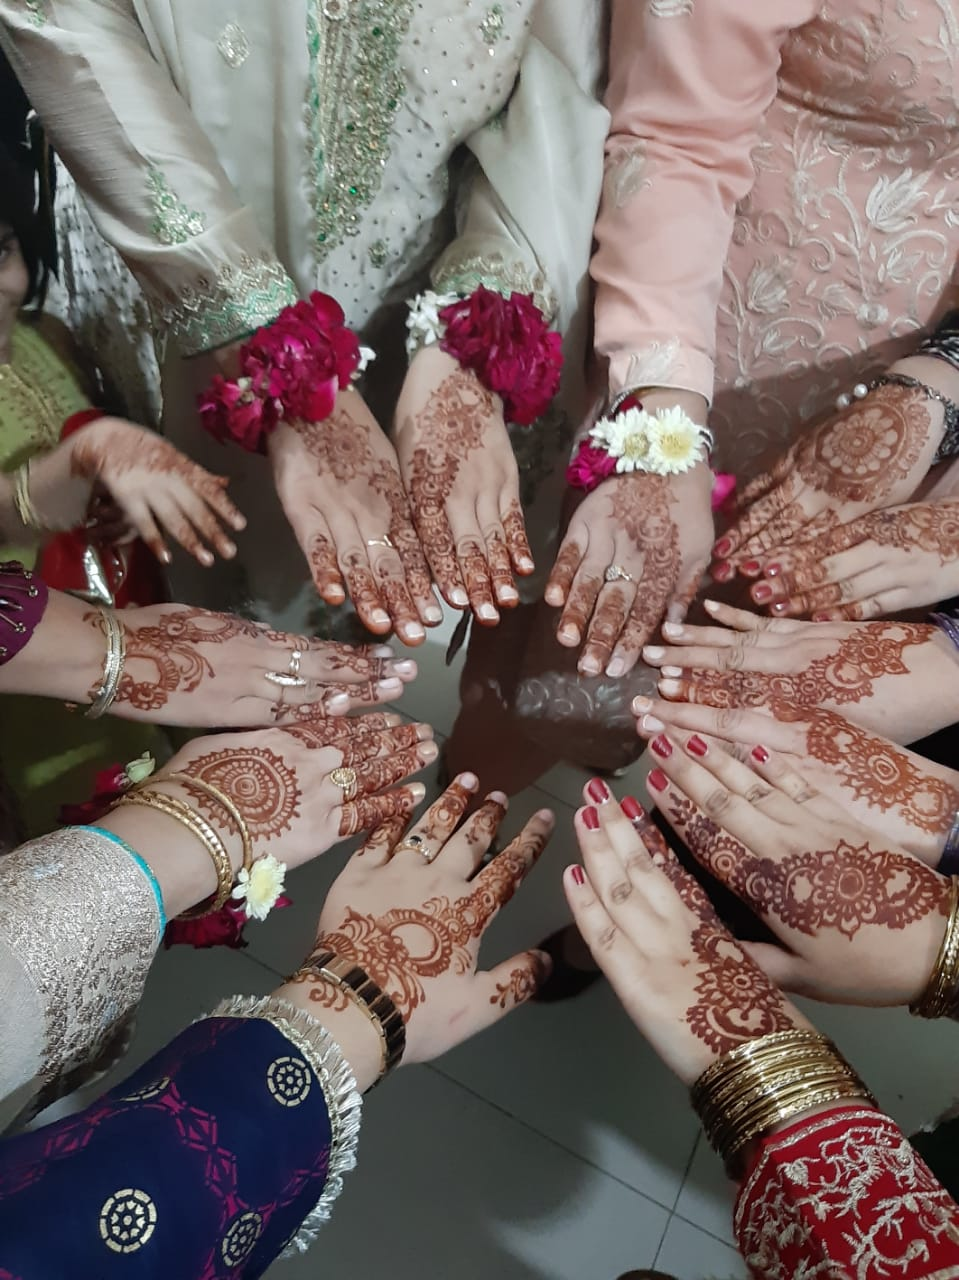 Everyone is showing their hands with nicely decorated Henna